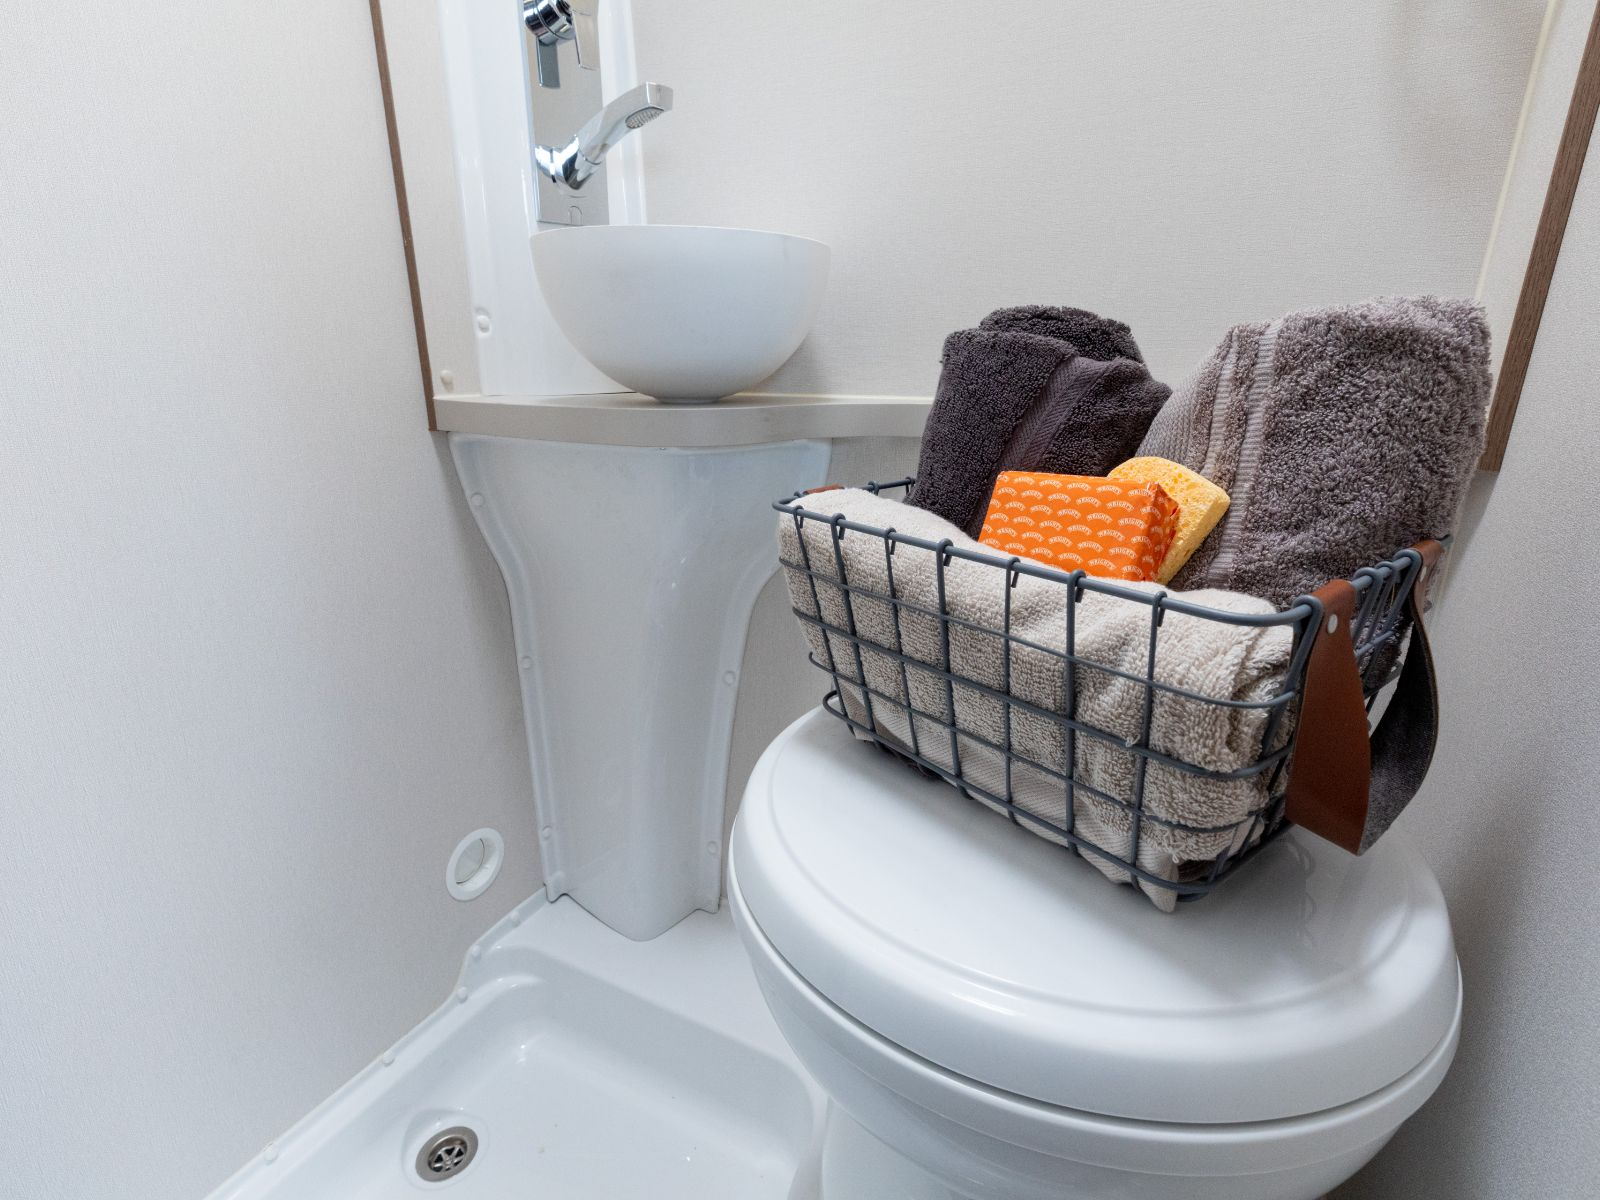 Bathroom with toilet and sink '